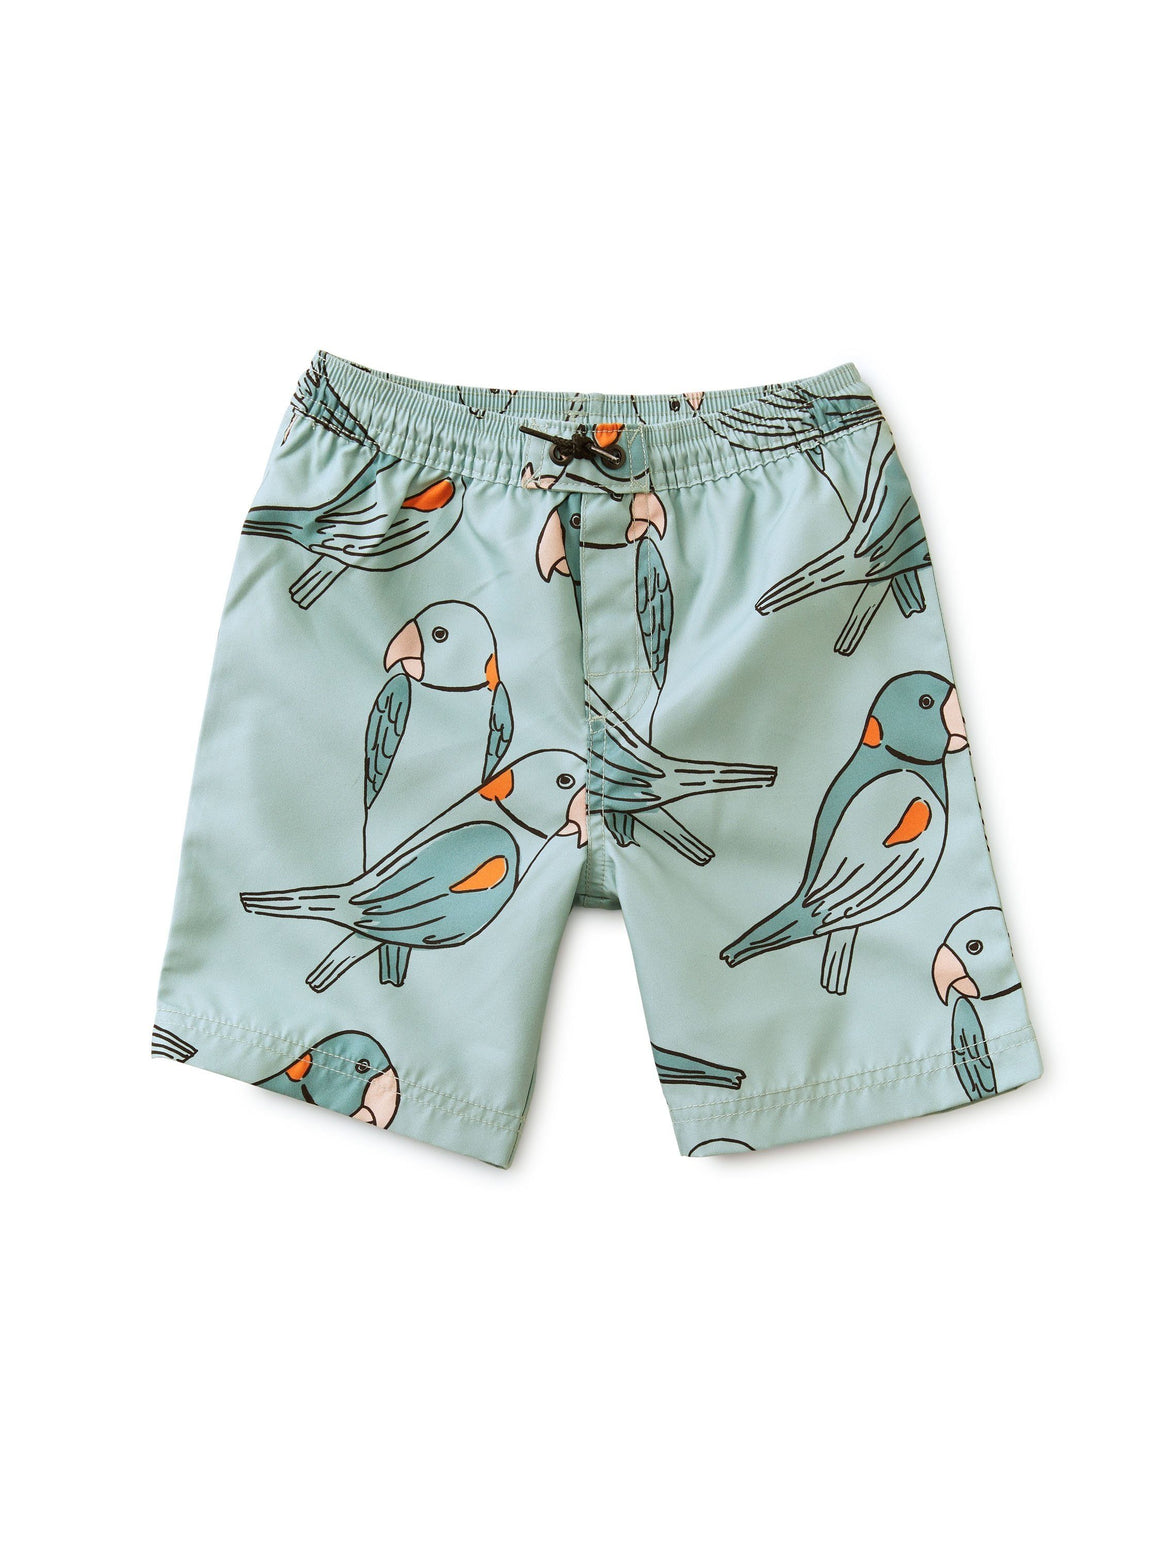 20S23607 - Y03 Tea Collection Mineral Parakeets Full-Length Swim Trunks Swimwear Tea Collection